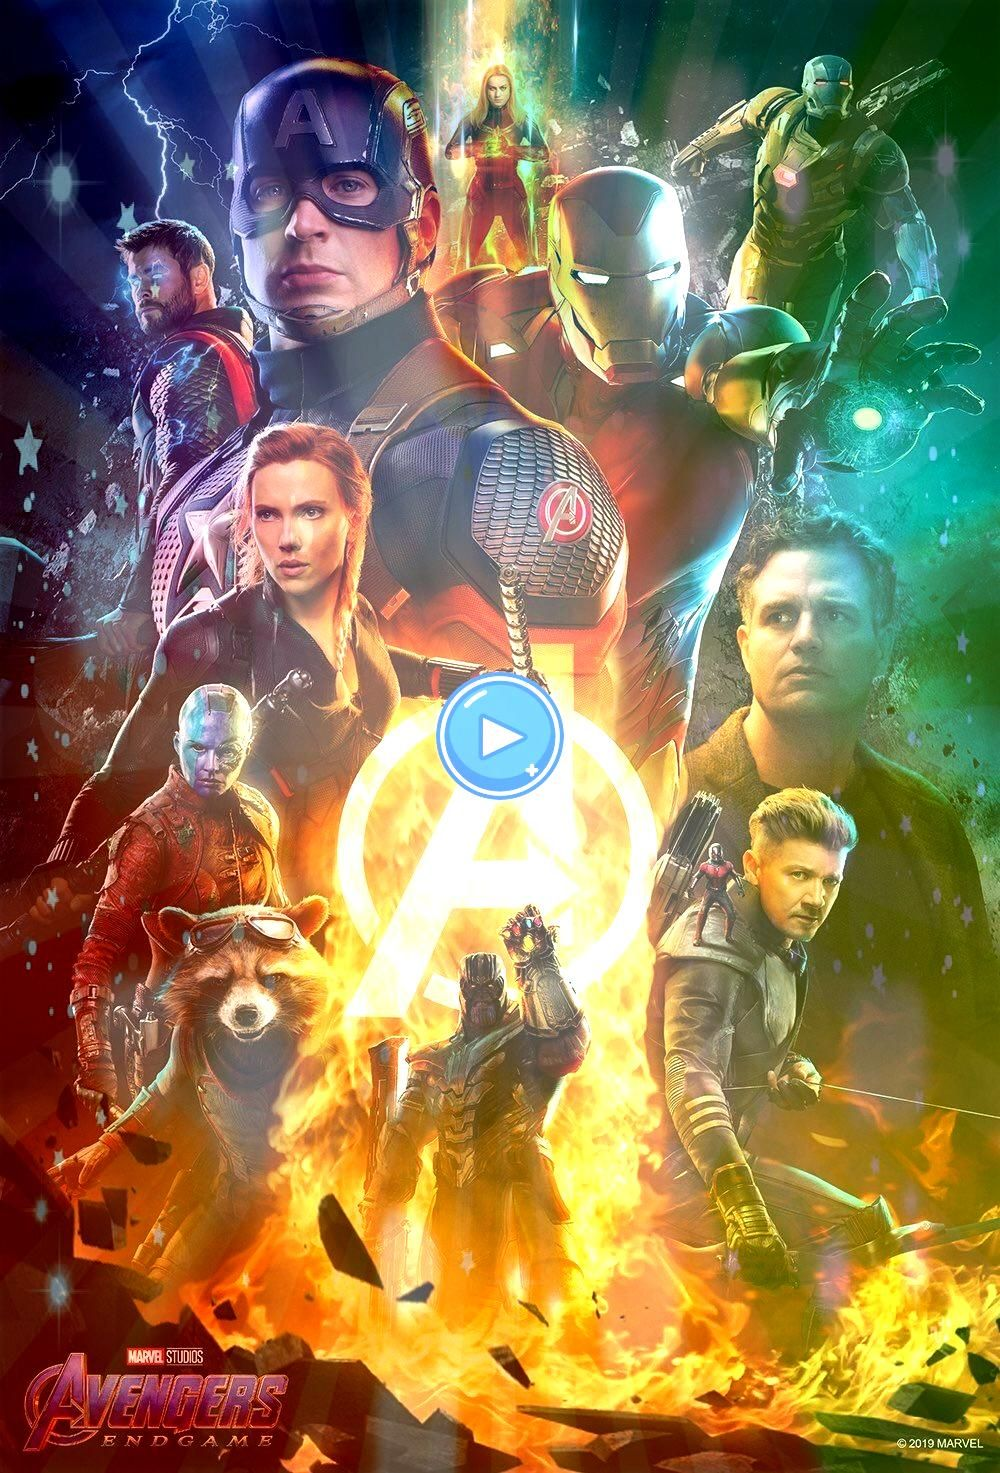 movie HQ of the Atom Ticketsexclusive BossLogic poster You can get one free when you buy tickets on Atomnew movie HQ of the Atom Ticketsexclusive BossLogic poster You can...